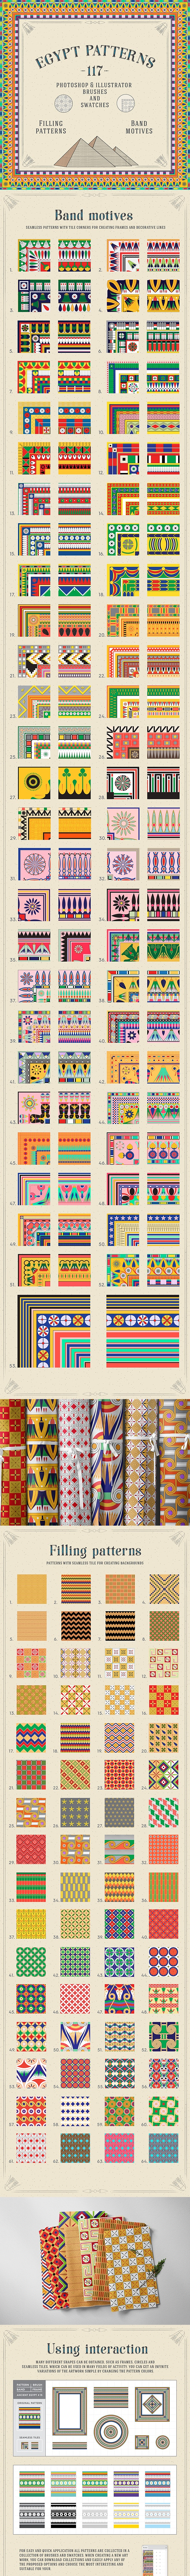 117 Egypt Patterns Brushes & Swatches - Brushes Illustrator